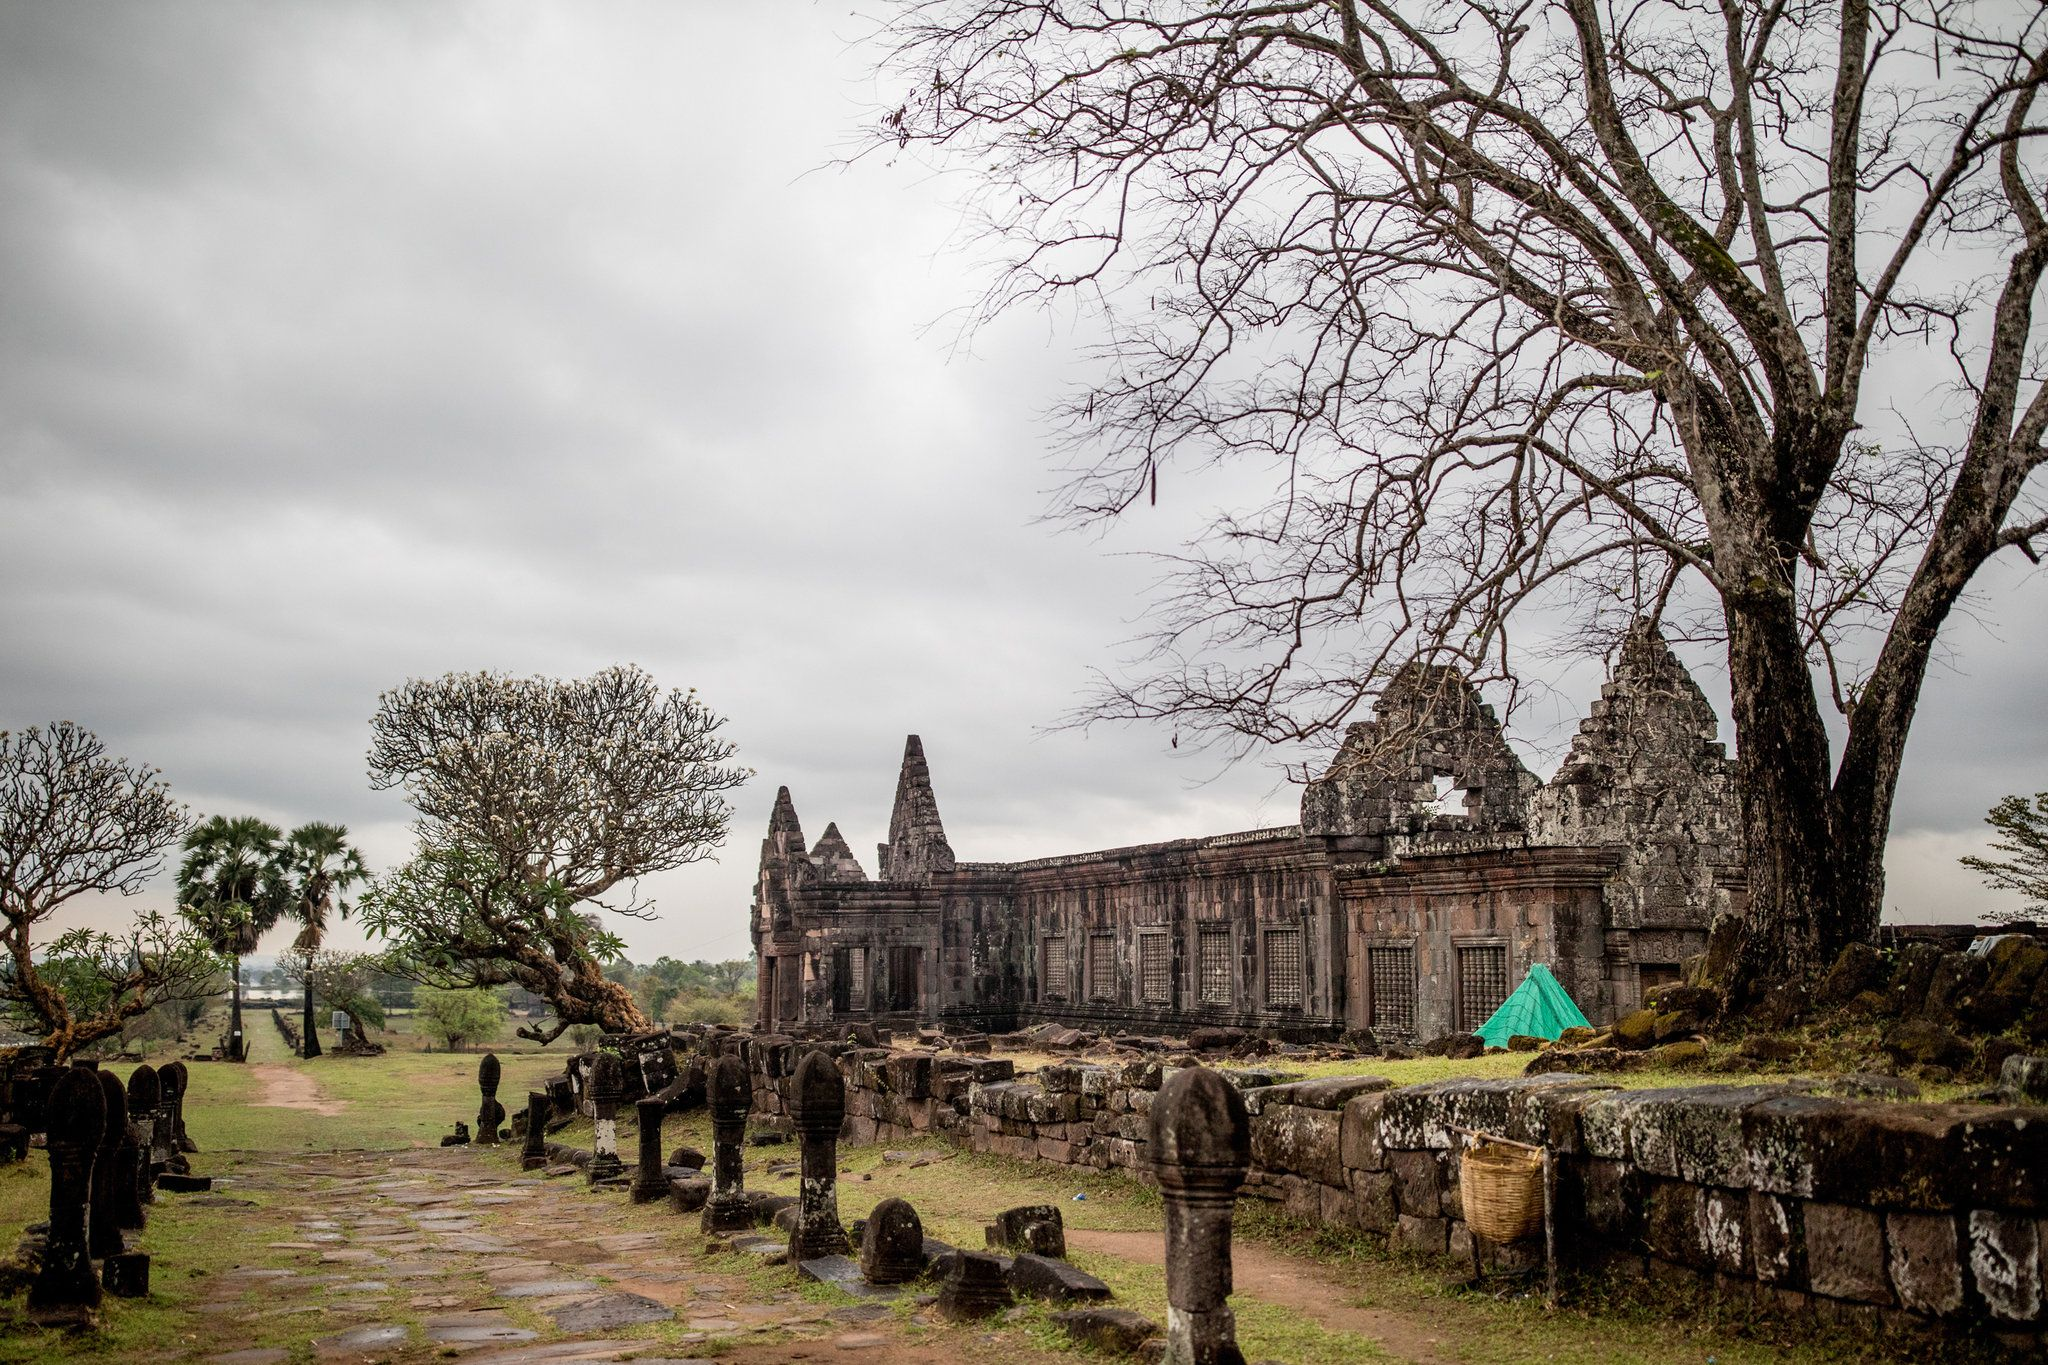 The restoration of an ancient Khmer temple is drawing adventurous tourists to a little-known corner of Southeast Asia.